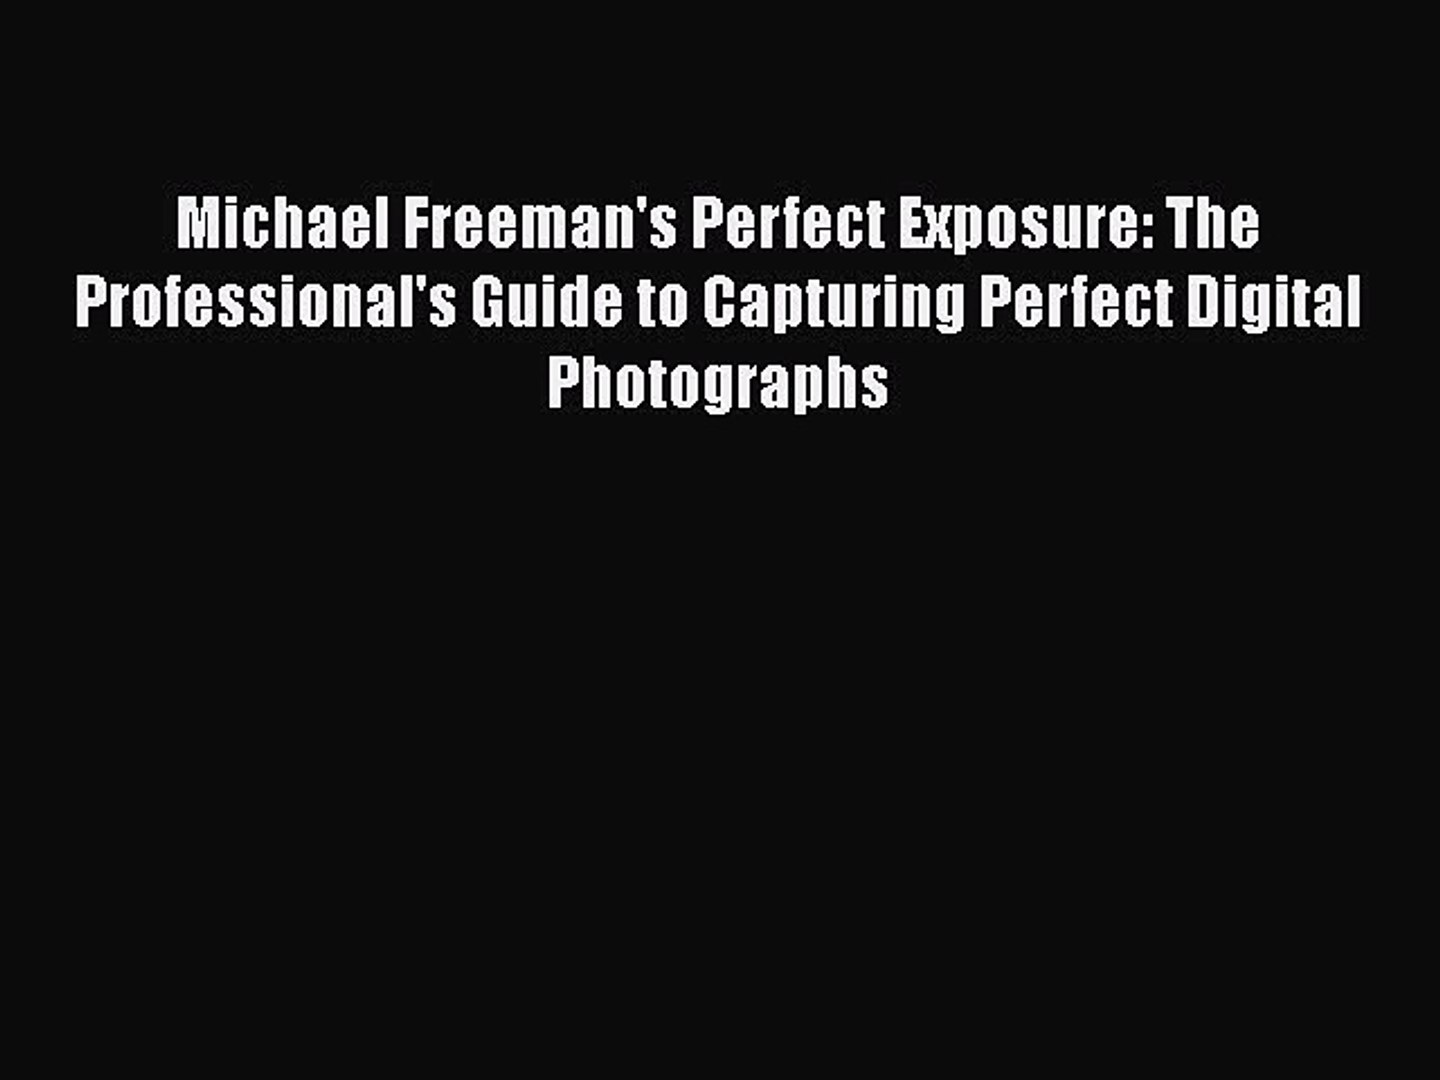 Pdf michael freemans perfect exposure the professionals guide to capturing perfect digital